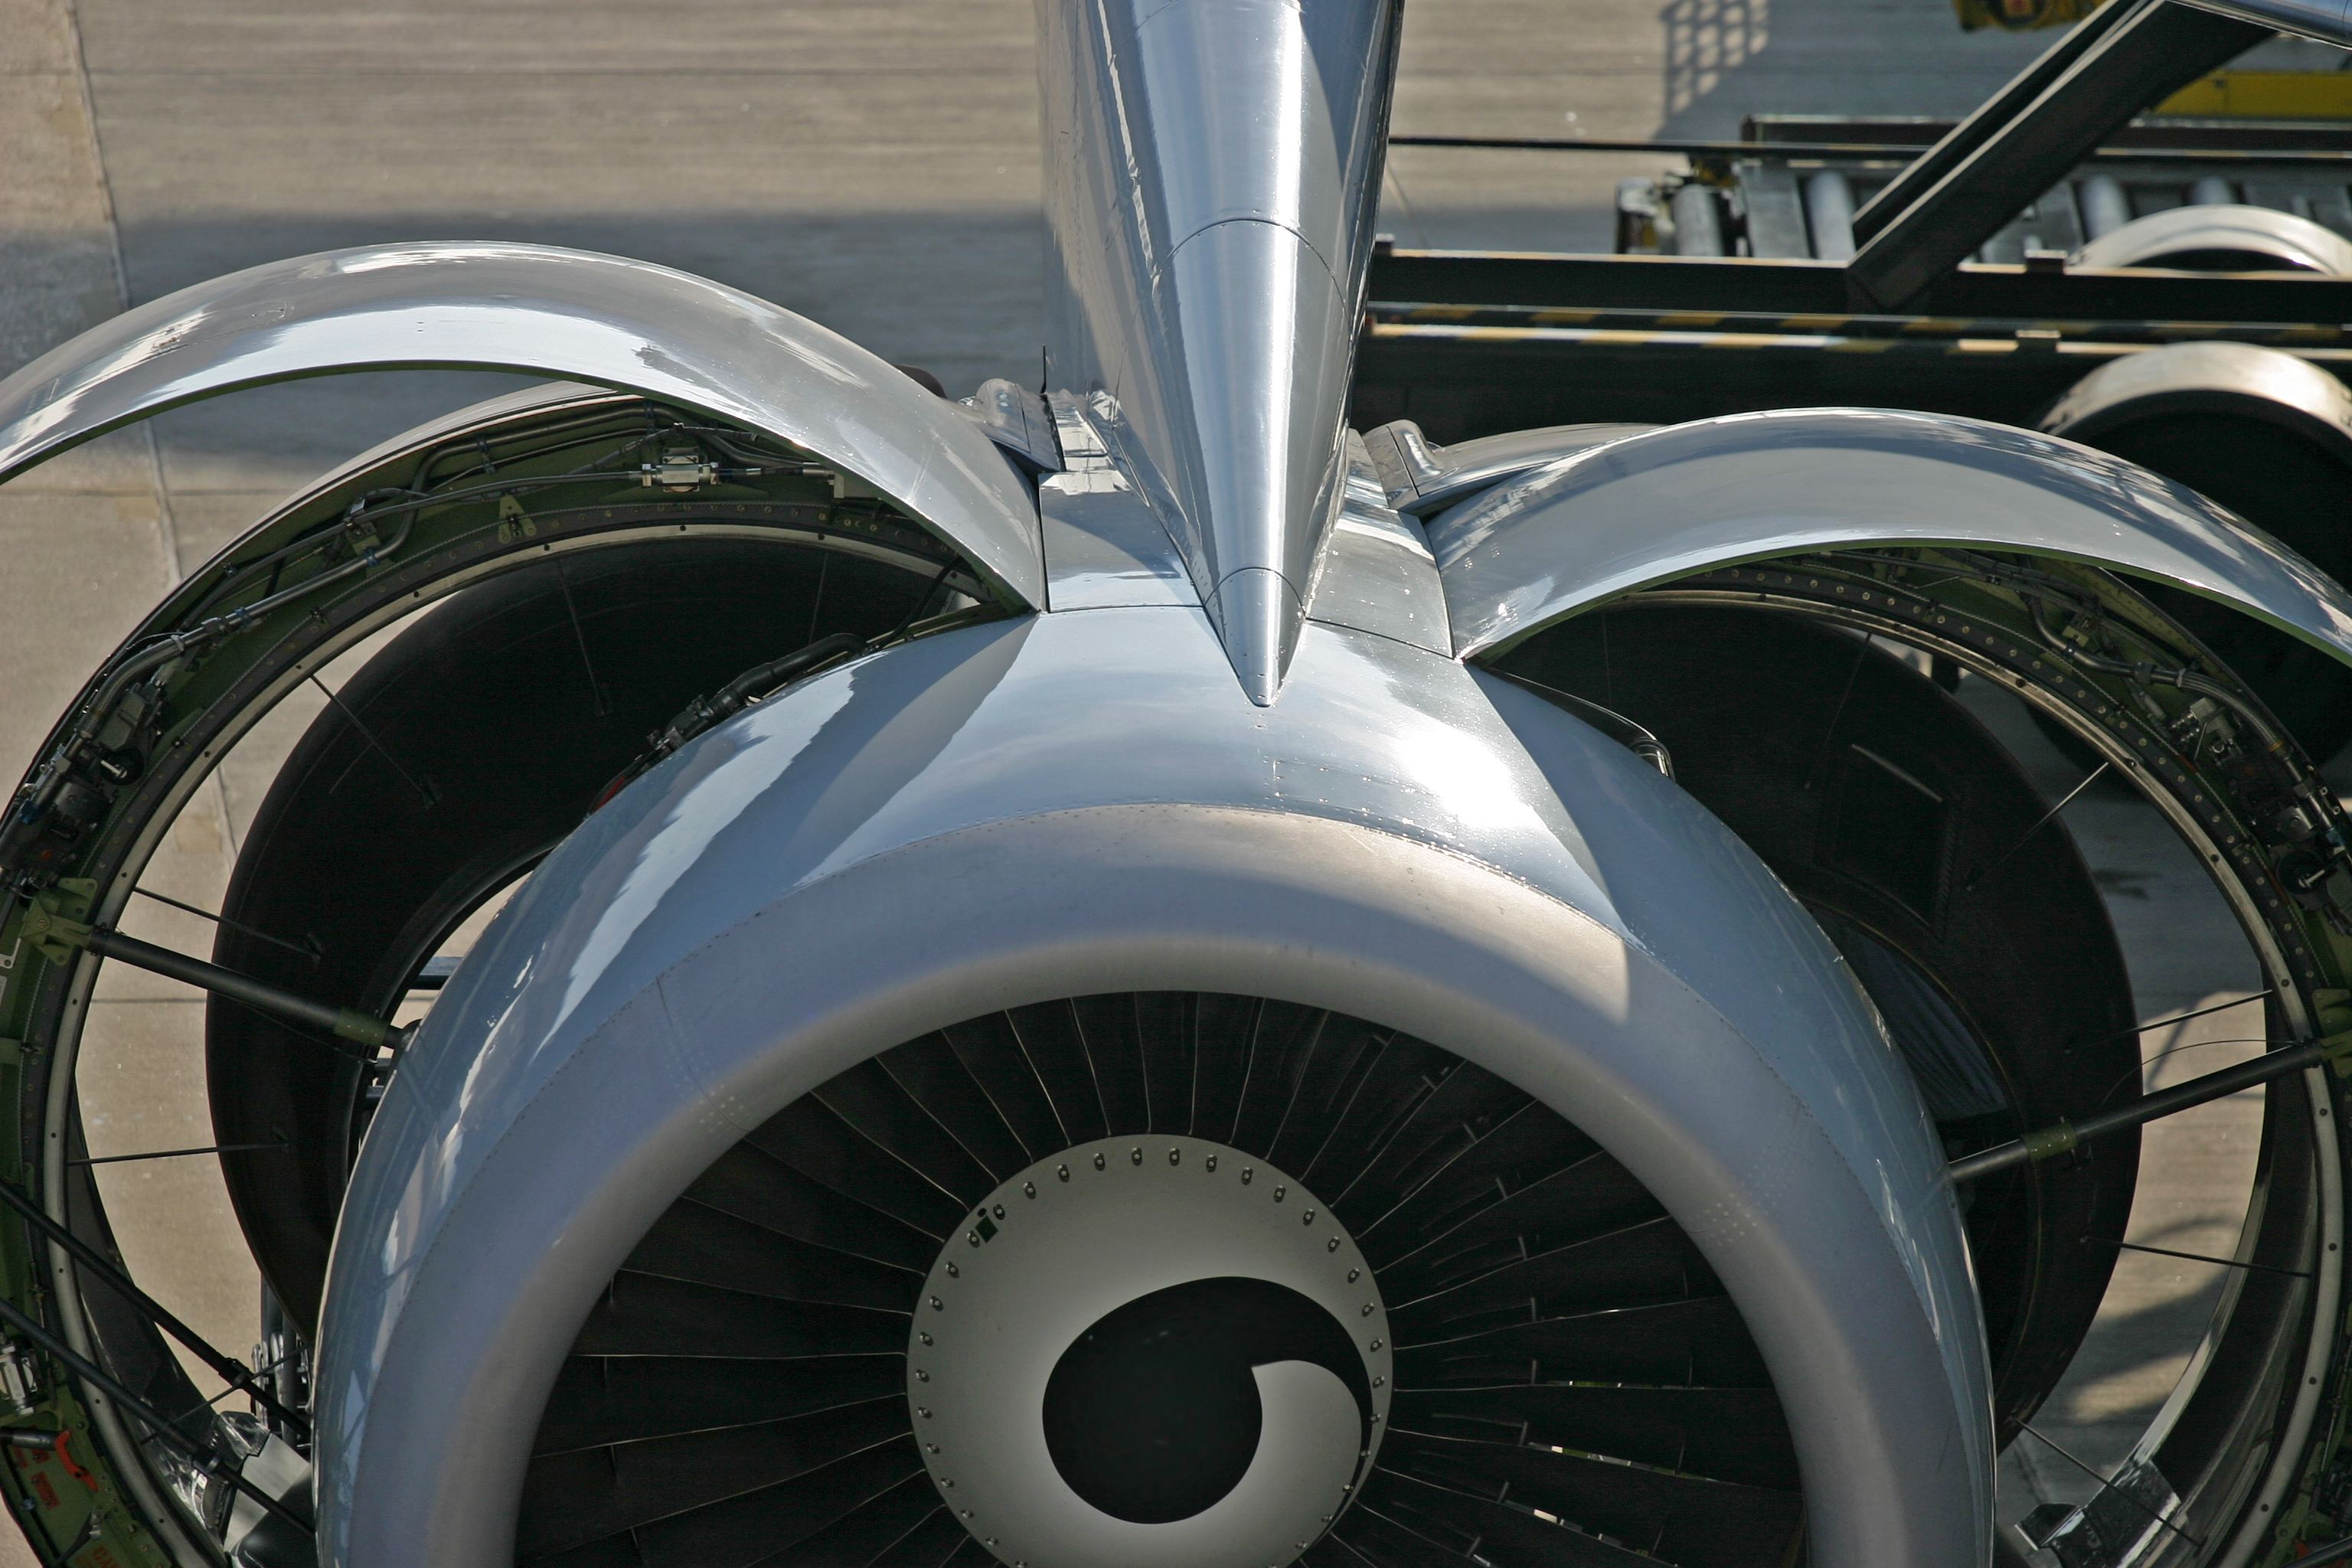 Uploaded Image: /uploads/images/aircraft engine.jpg